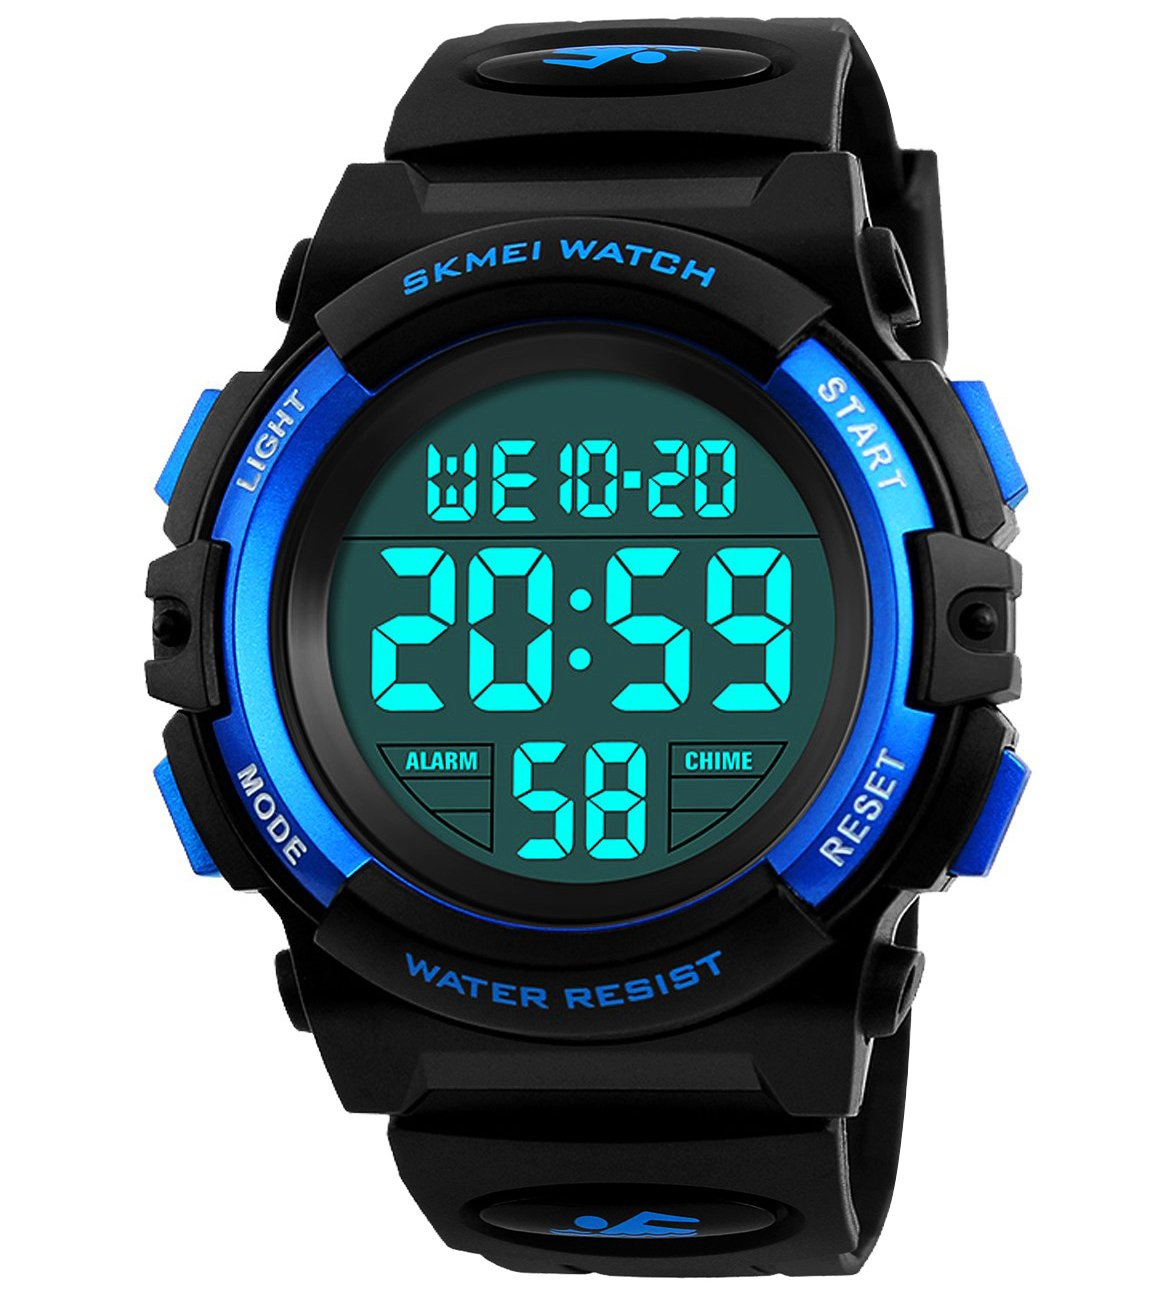 9b790e101 Get Quotations · Kids Digital Watch,Boys Sports Waterproof Led Watches With  Alarm,Wrist Watch For Boys